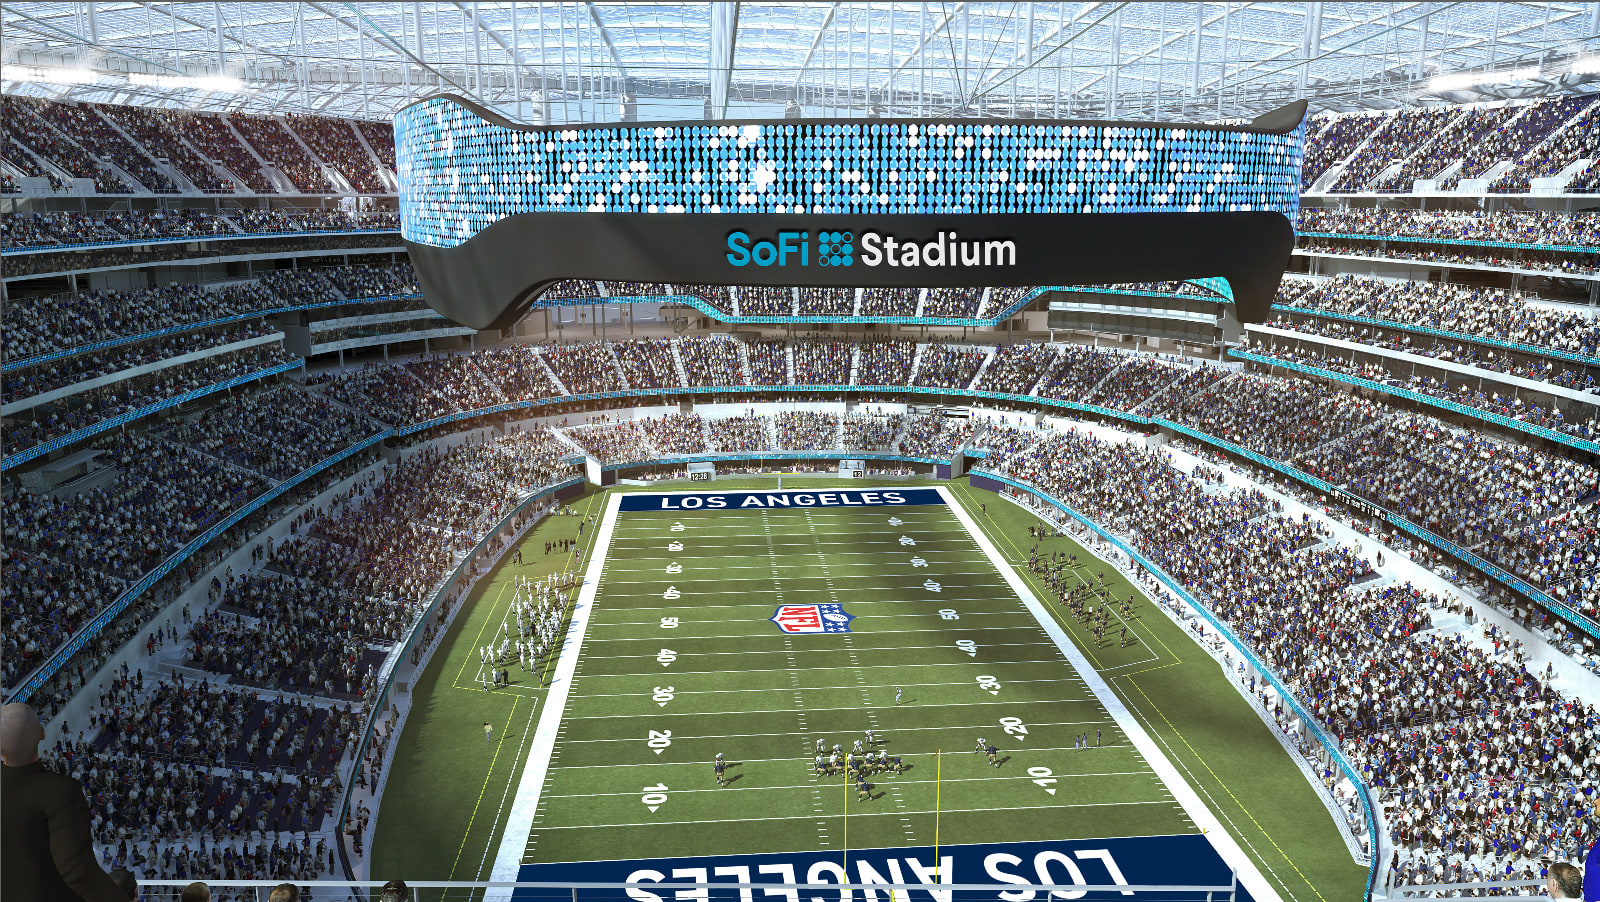 Finance start-up SoFi strikes deal to put its name on new LA stadium for the Rams and Chargers